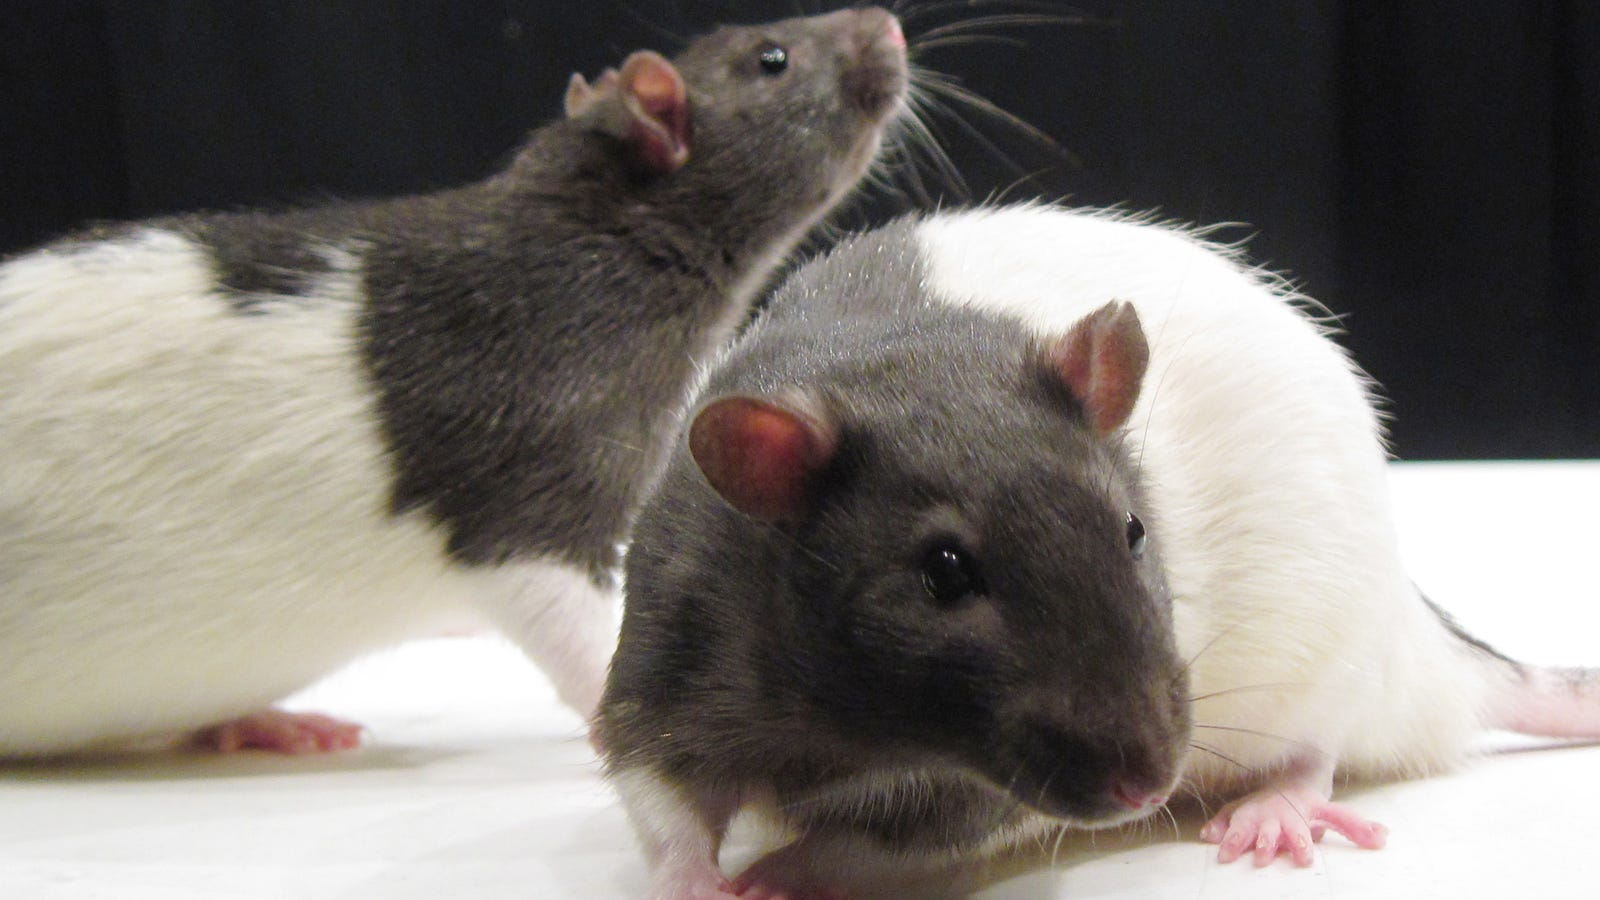 A Rat Study Finds that Acupuncture Can Treat Alcohol Addiction... in Rats